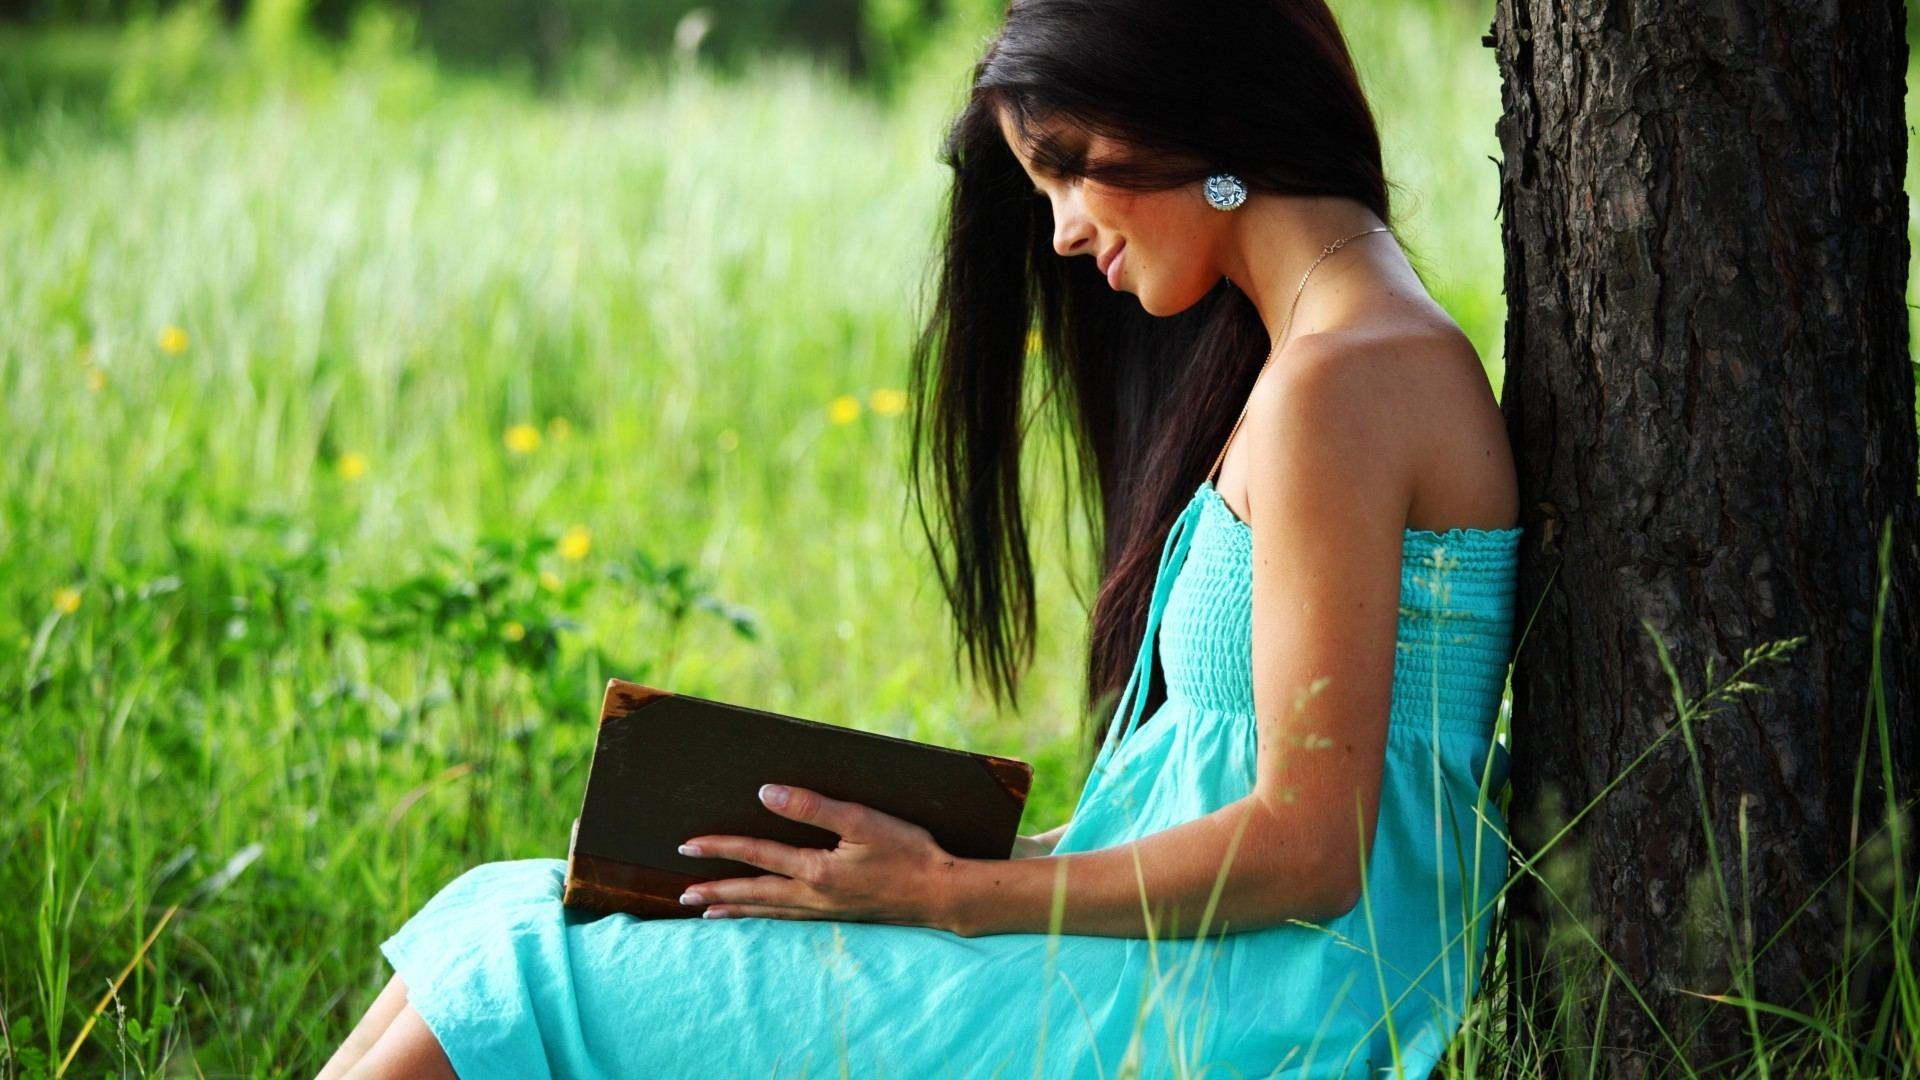 Girls Reading Books Wallpapers